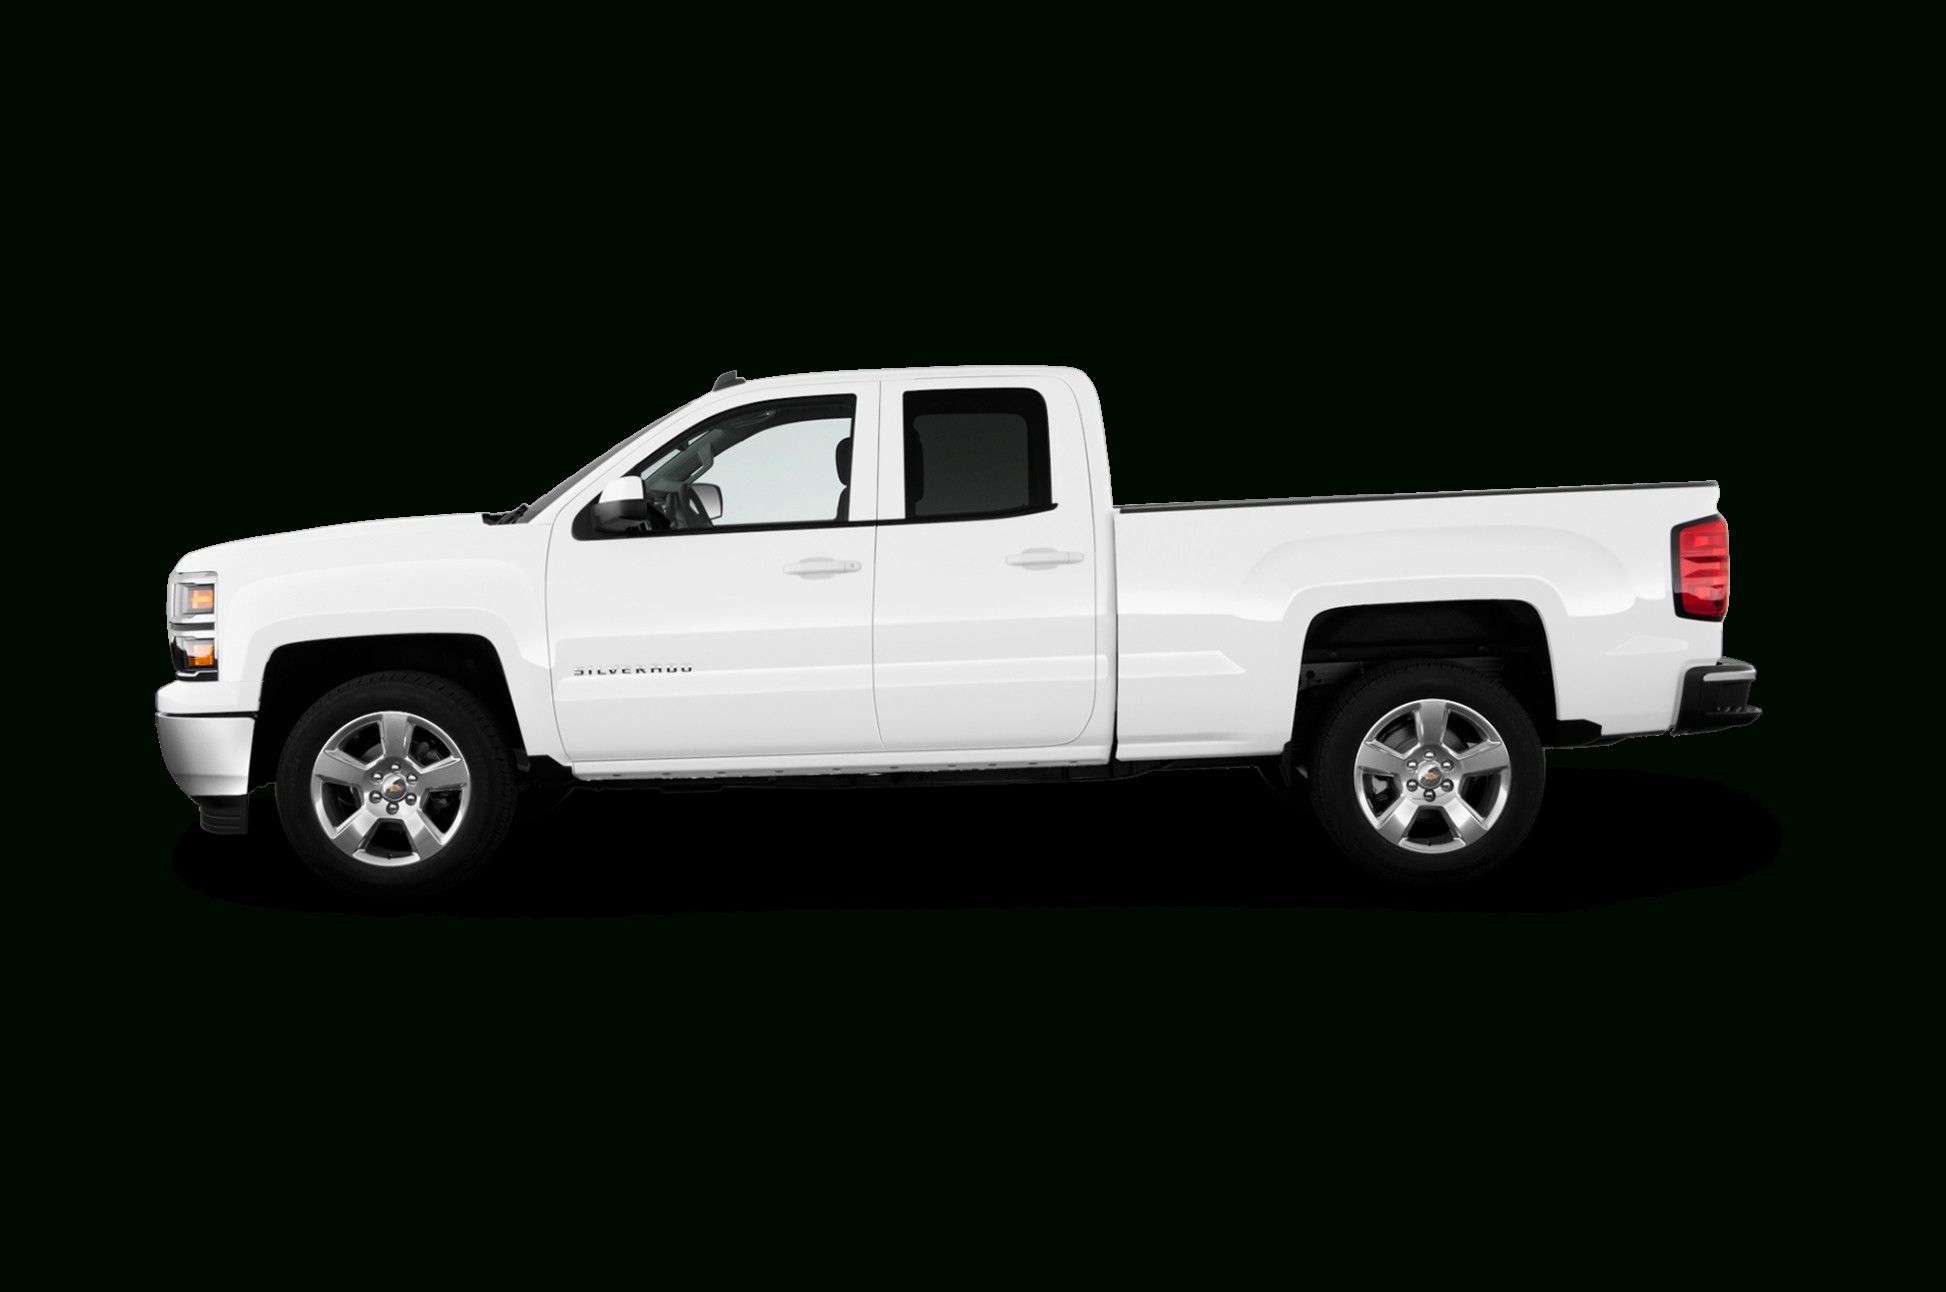 1946x1292 2015 Chevrolet Silverado 1500 Reviews And Rating | Motor Trend in Great  2015 Chevrolet Silverado 1500